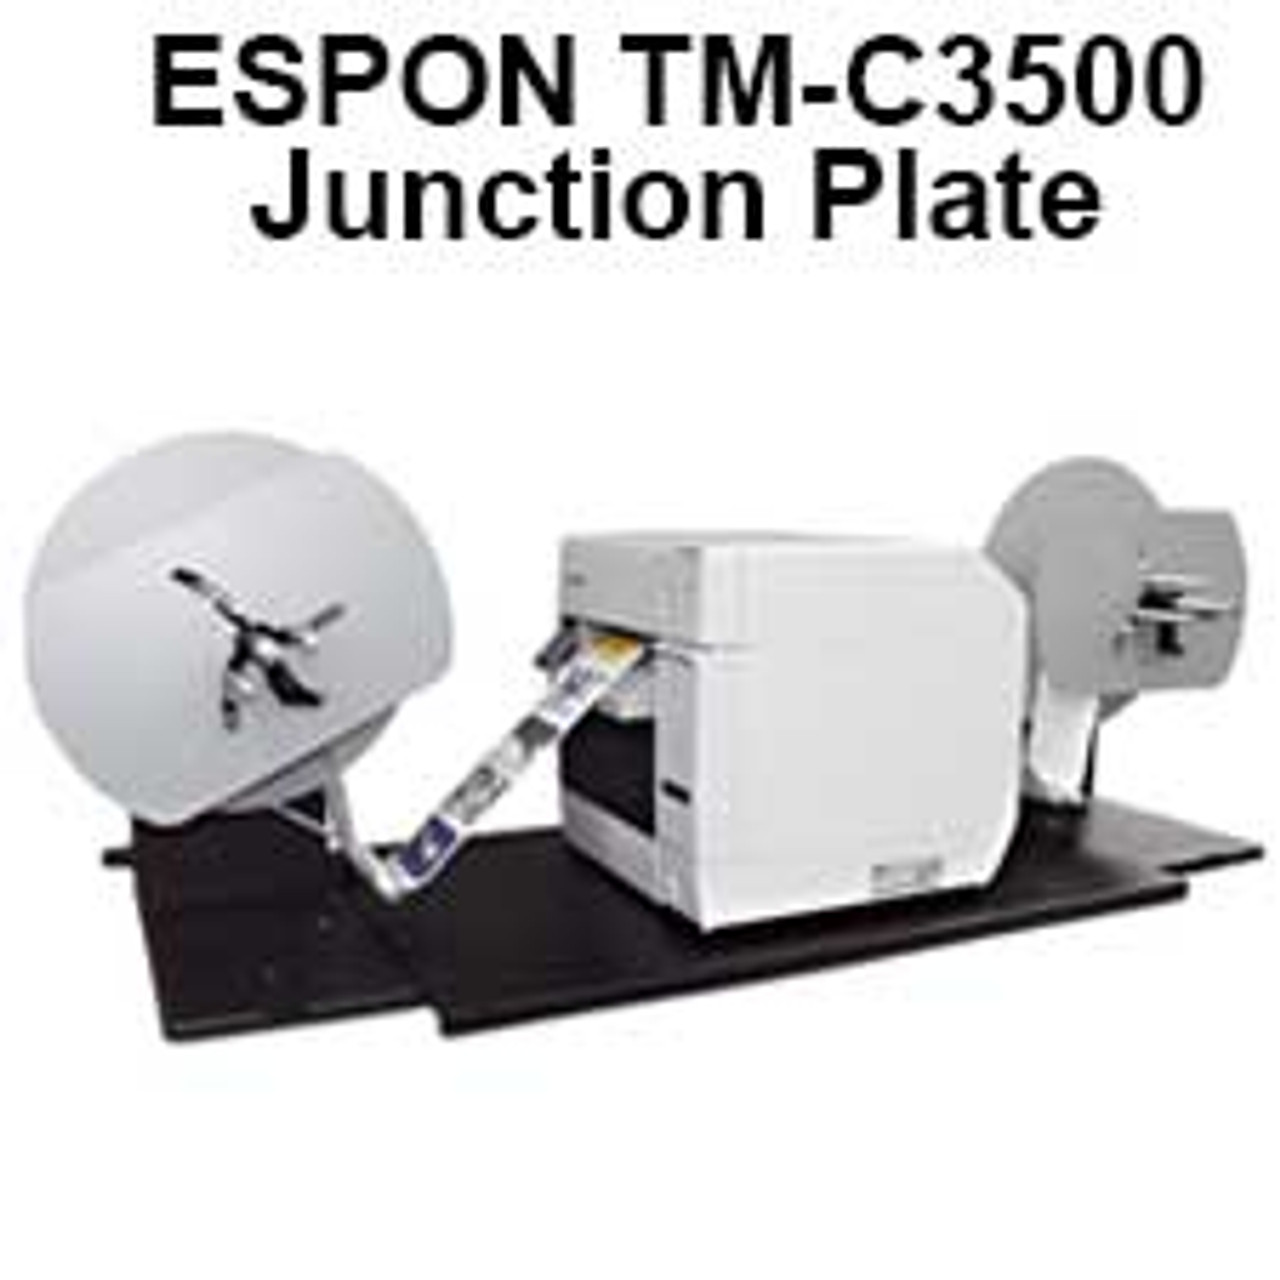 Epson TM-C3500 shown sitting on the junction plate with the label unwinder and rewinder attached.